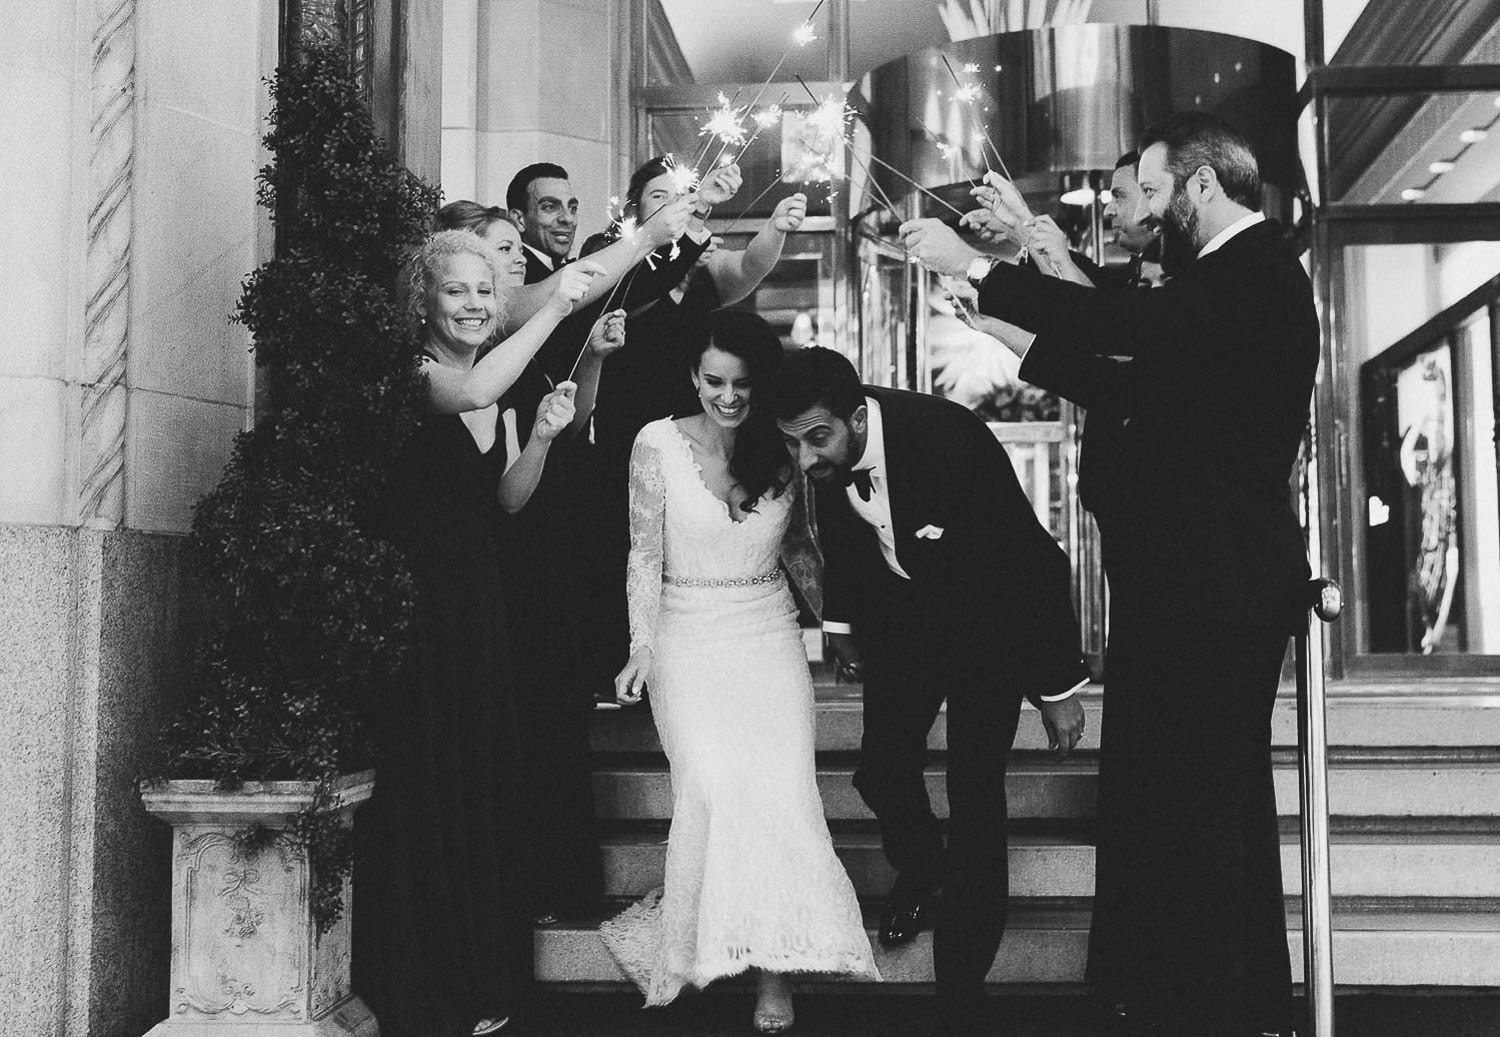 wedding send off with sparklers | Photo: Camilla Anchisi, Italian wedding photographer